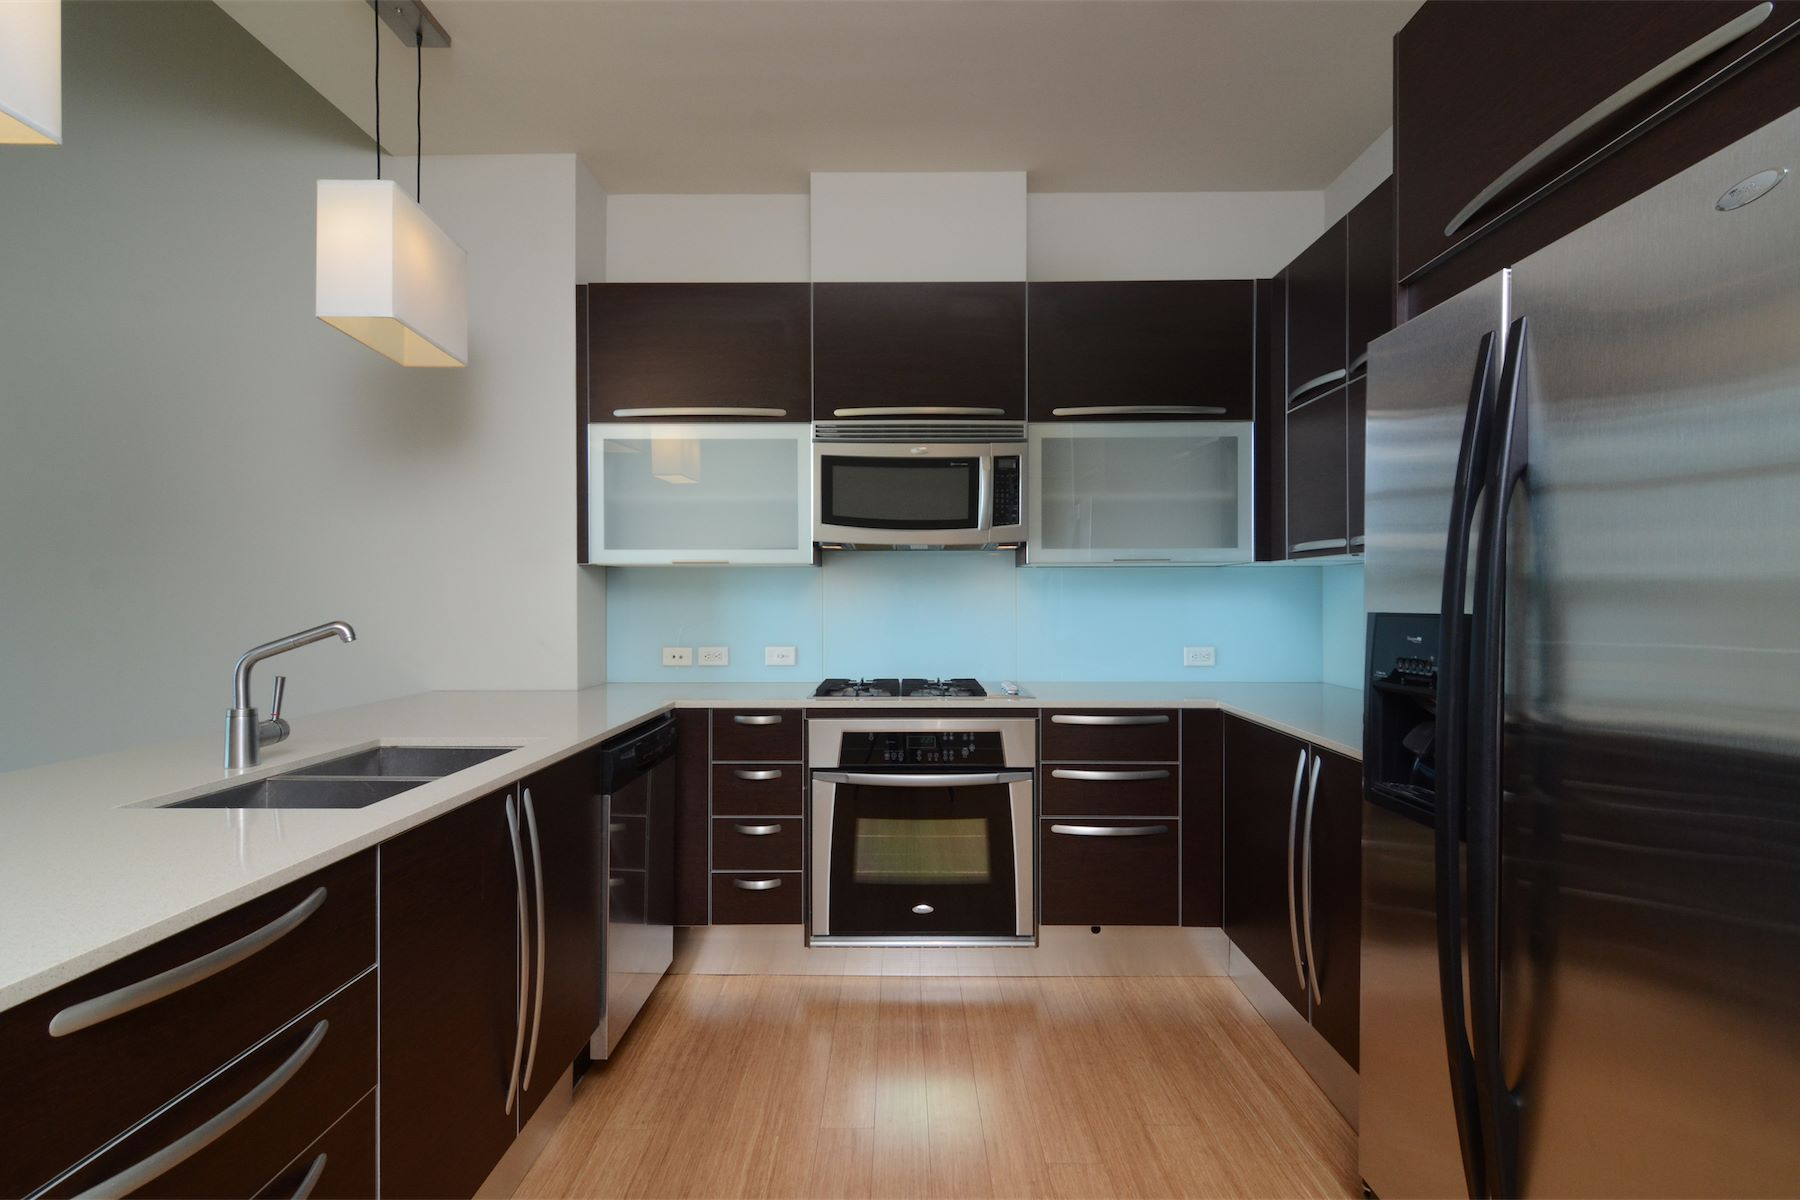 Condominium for Rent at Fantastic One Bedroom Terrazzo Rental 700 12th Avenue South #508 Nashville, Tennessee 37203 United States